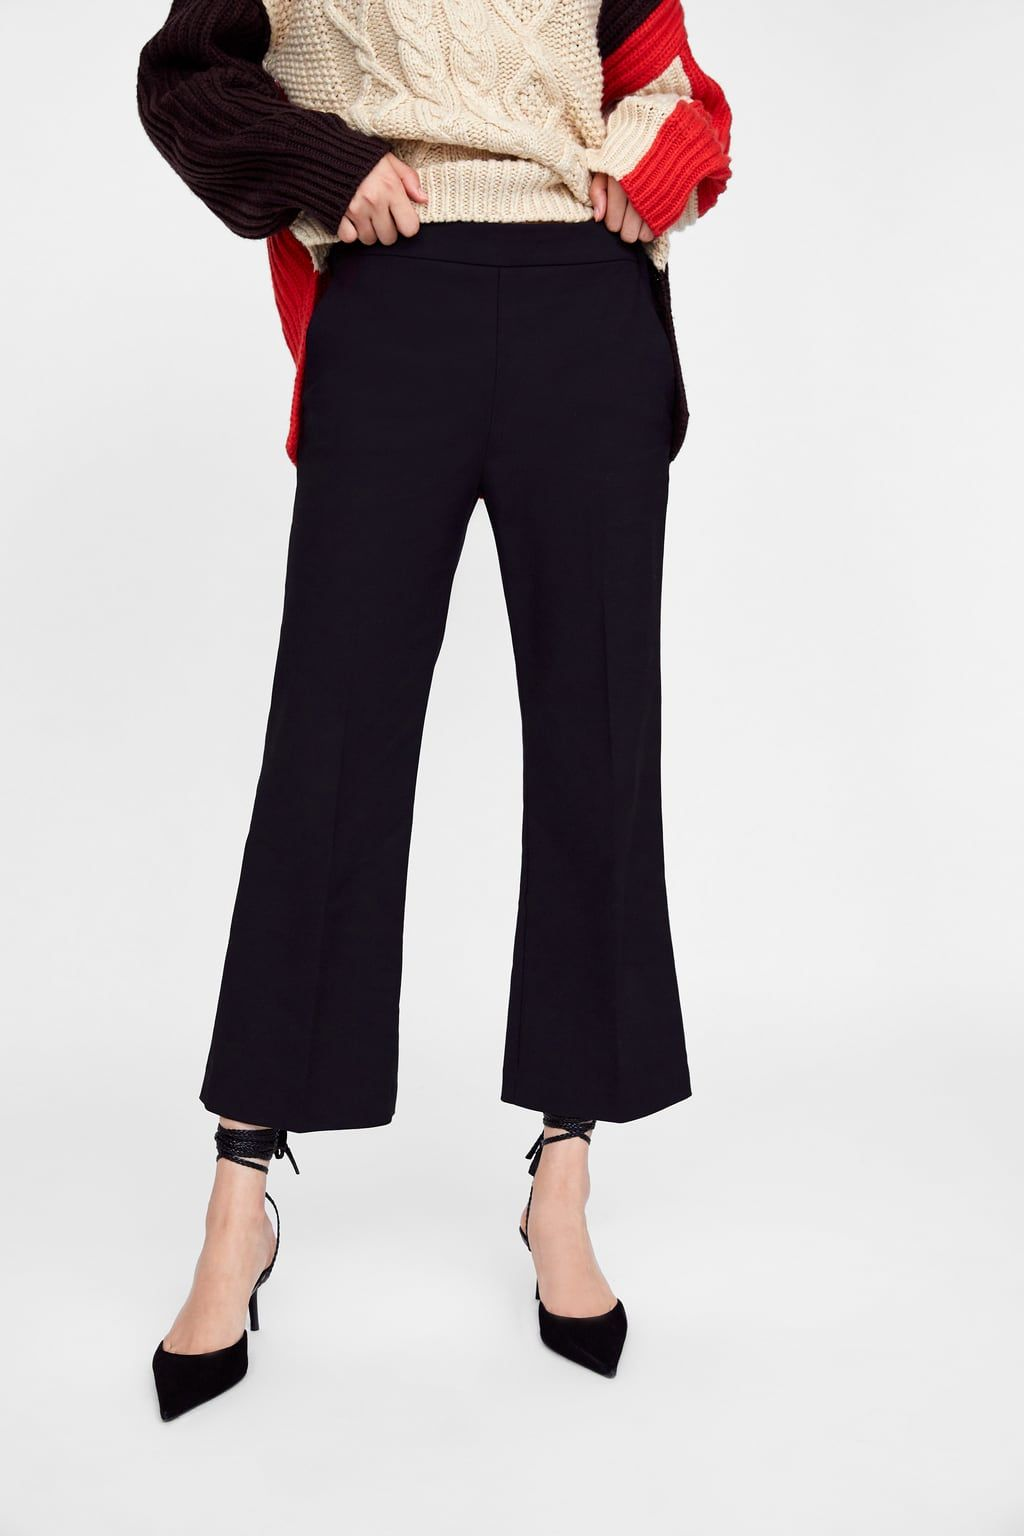 c0186312 Image 2 of CROPPED FLARE PANTS from Zara | Work Wardrobe | Cropped ...